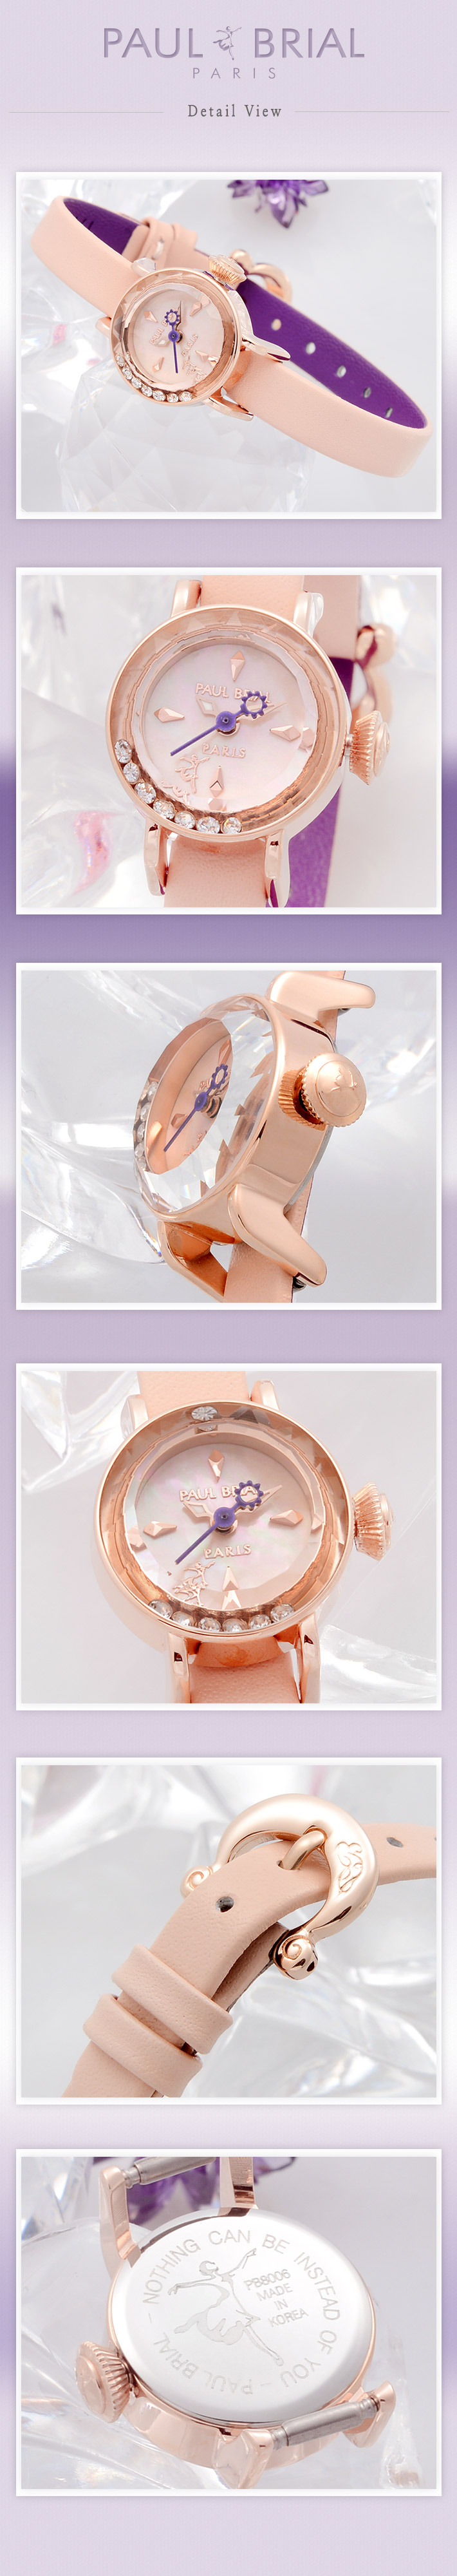 [ PAUL BRIAL ] KOREA MADE HIGH QUALITY LADIES ROSE GOLD PINK LEATHER BAND WATCH PB8006RG/PK AJACCIO Ⅱ